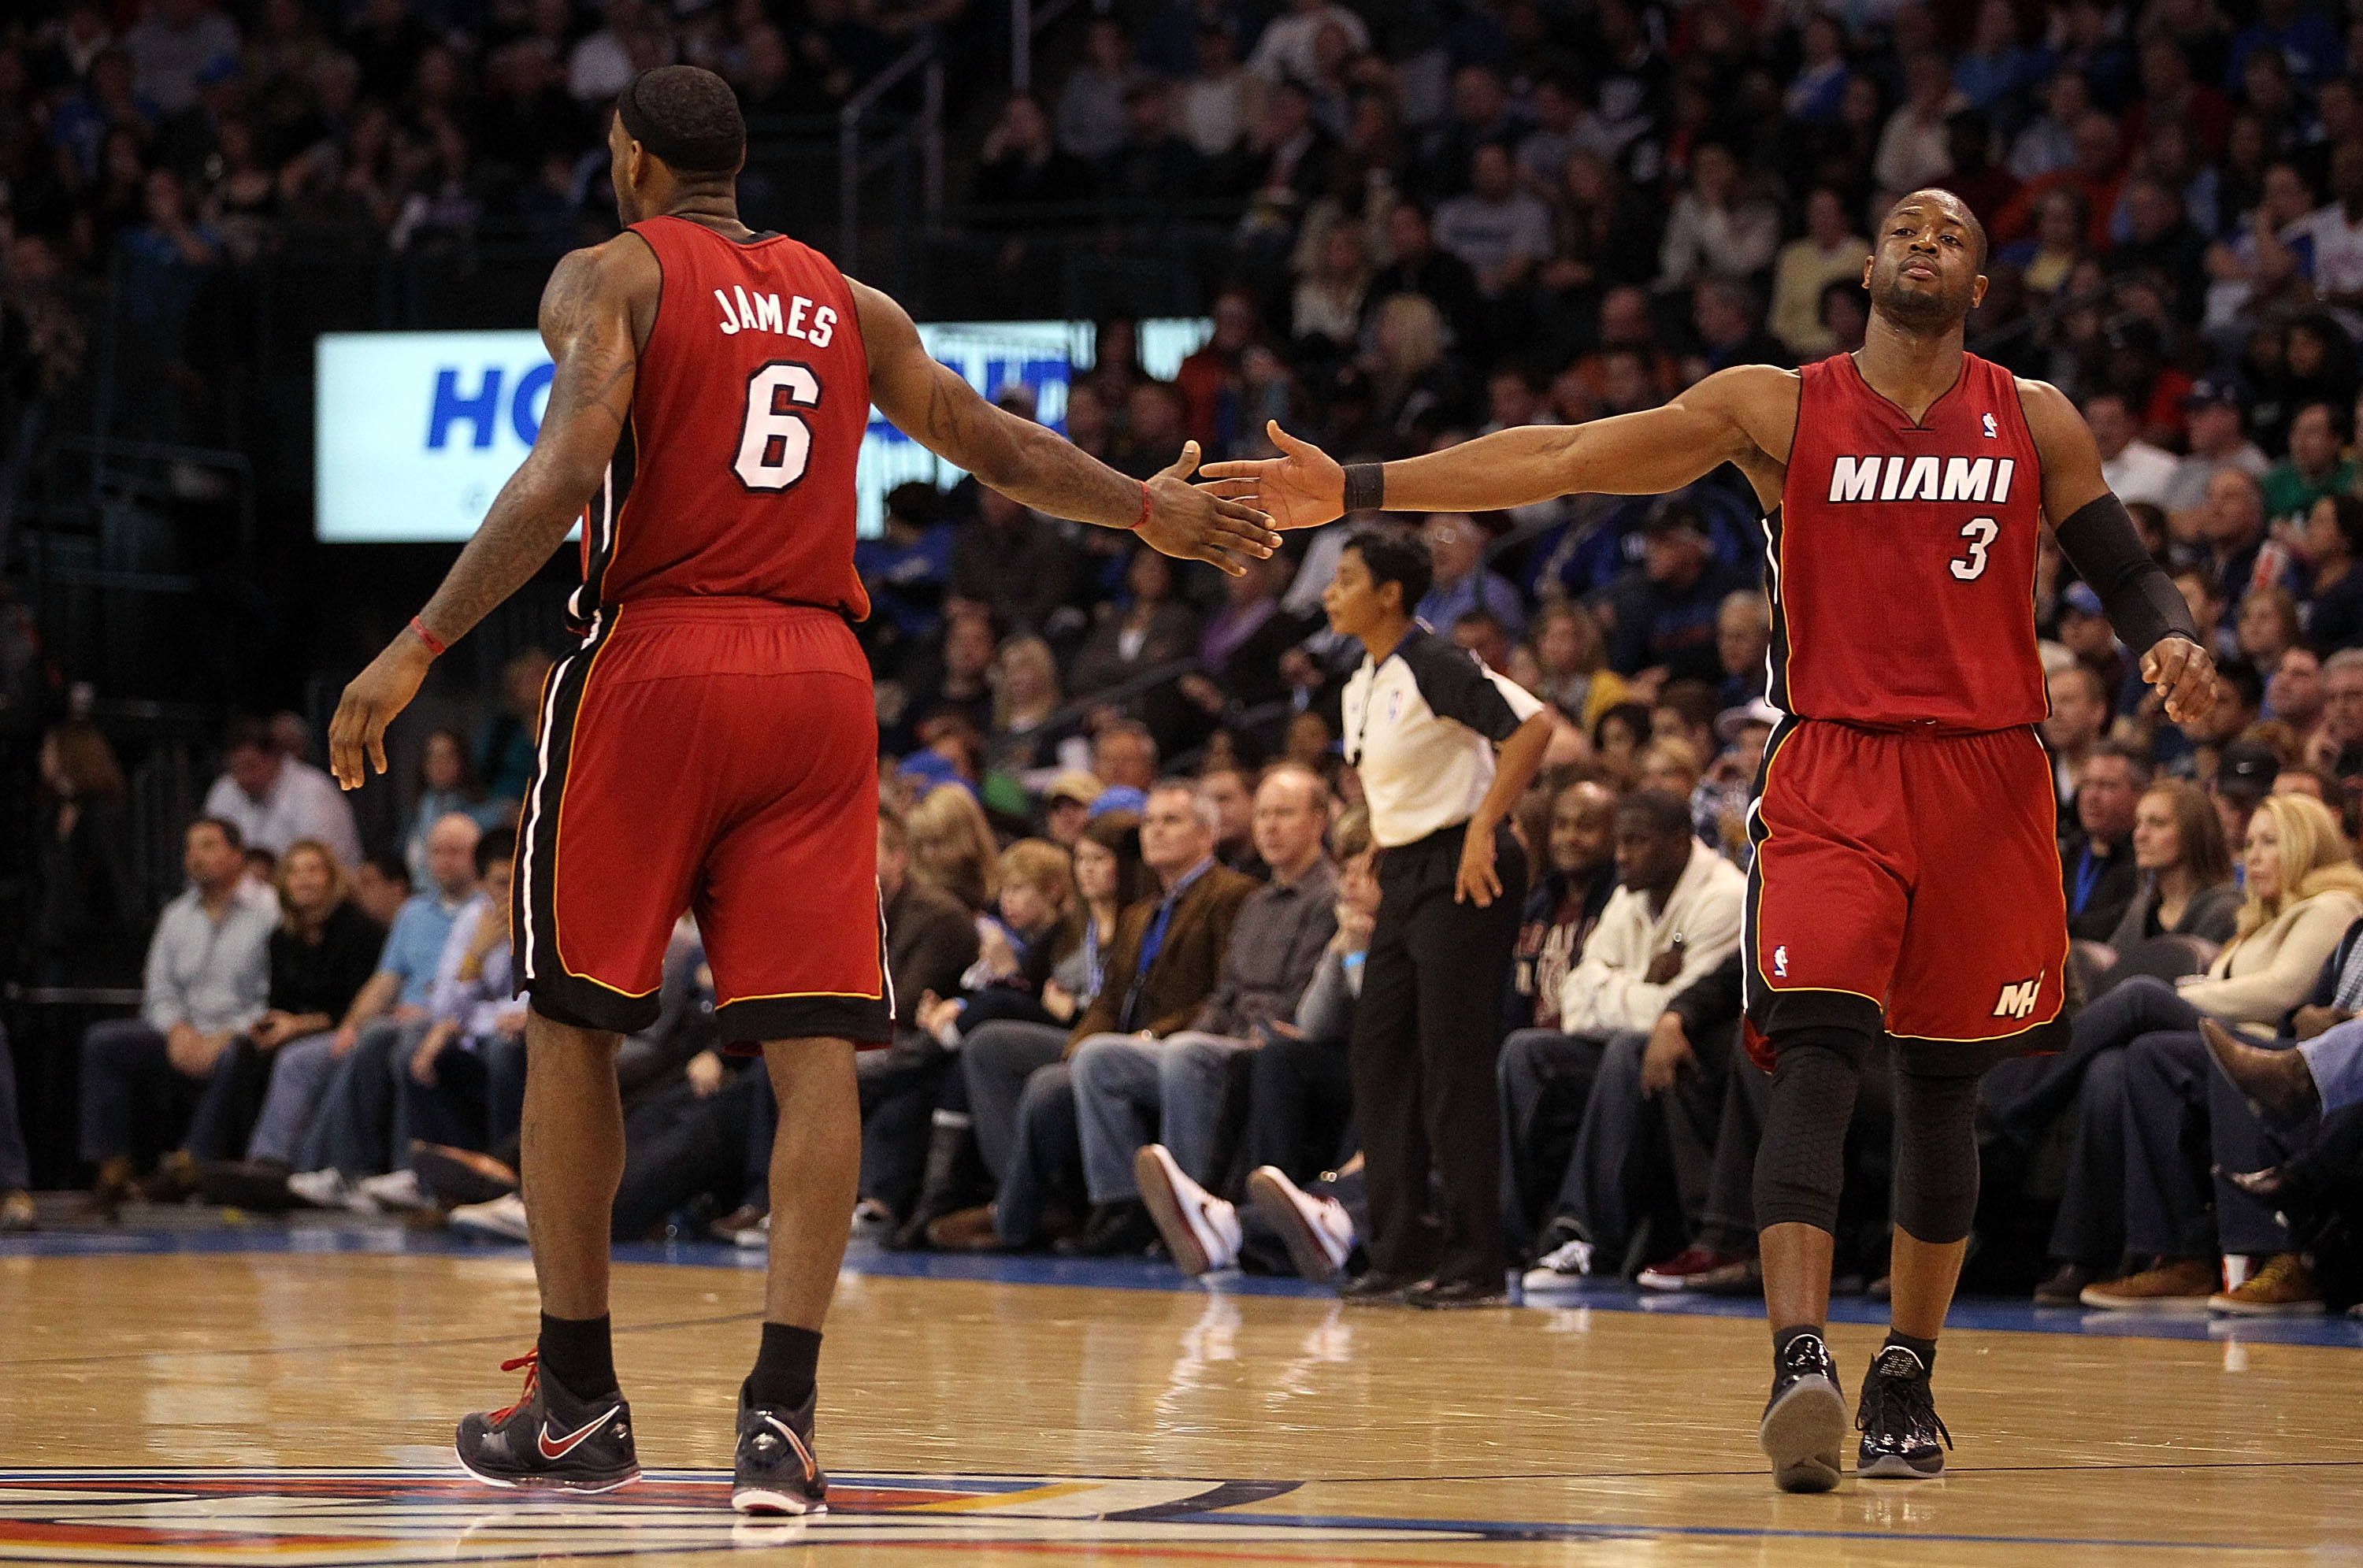 OKLAHOMA CITY, OK - JANUARY 30:  Forward LeBron James #6 and Dwyane Wade #3 of the Miami Heat slap hands during play against the Oklahoma City Thunder at Ford Center on January 30, 2011 in Oklahoma City, Oklahoma.  NOTE TO USER: User expressly acknowledge